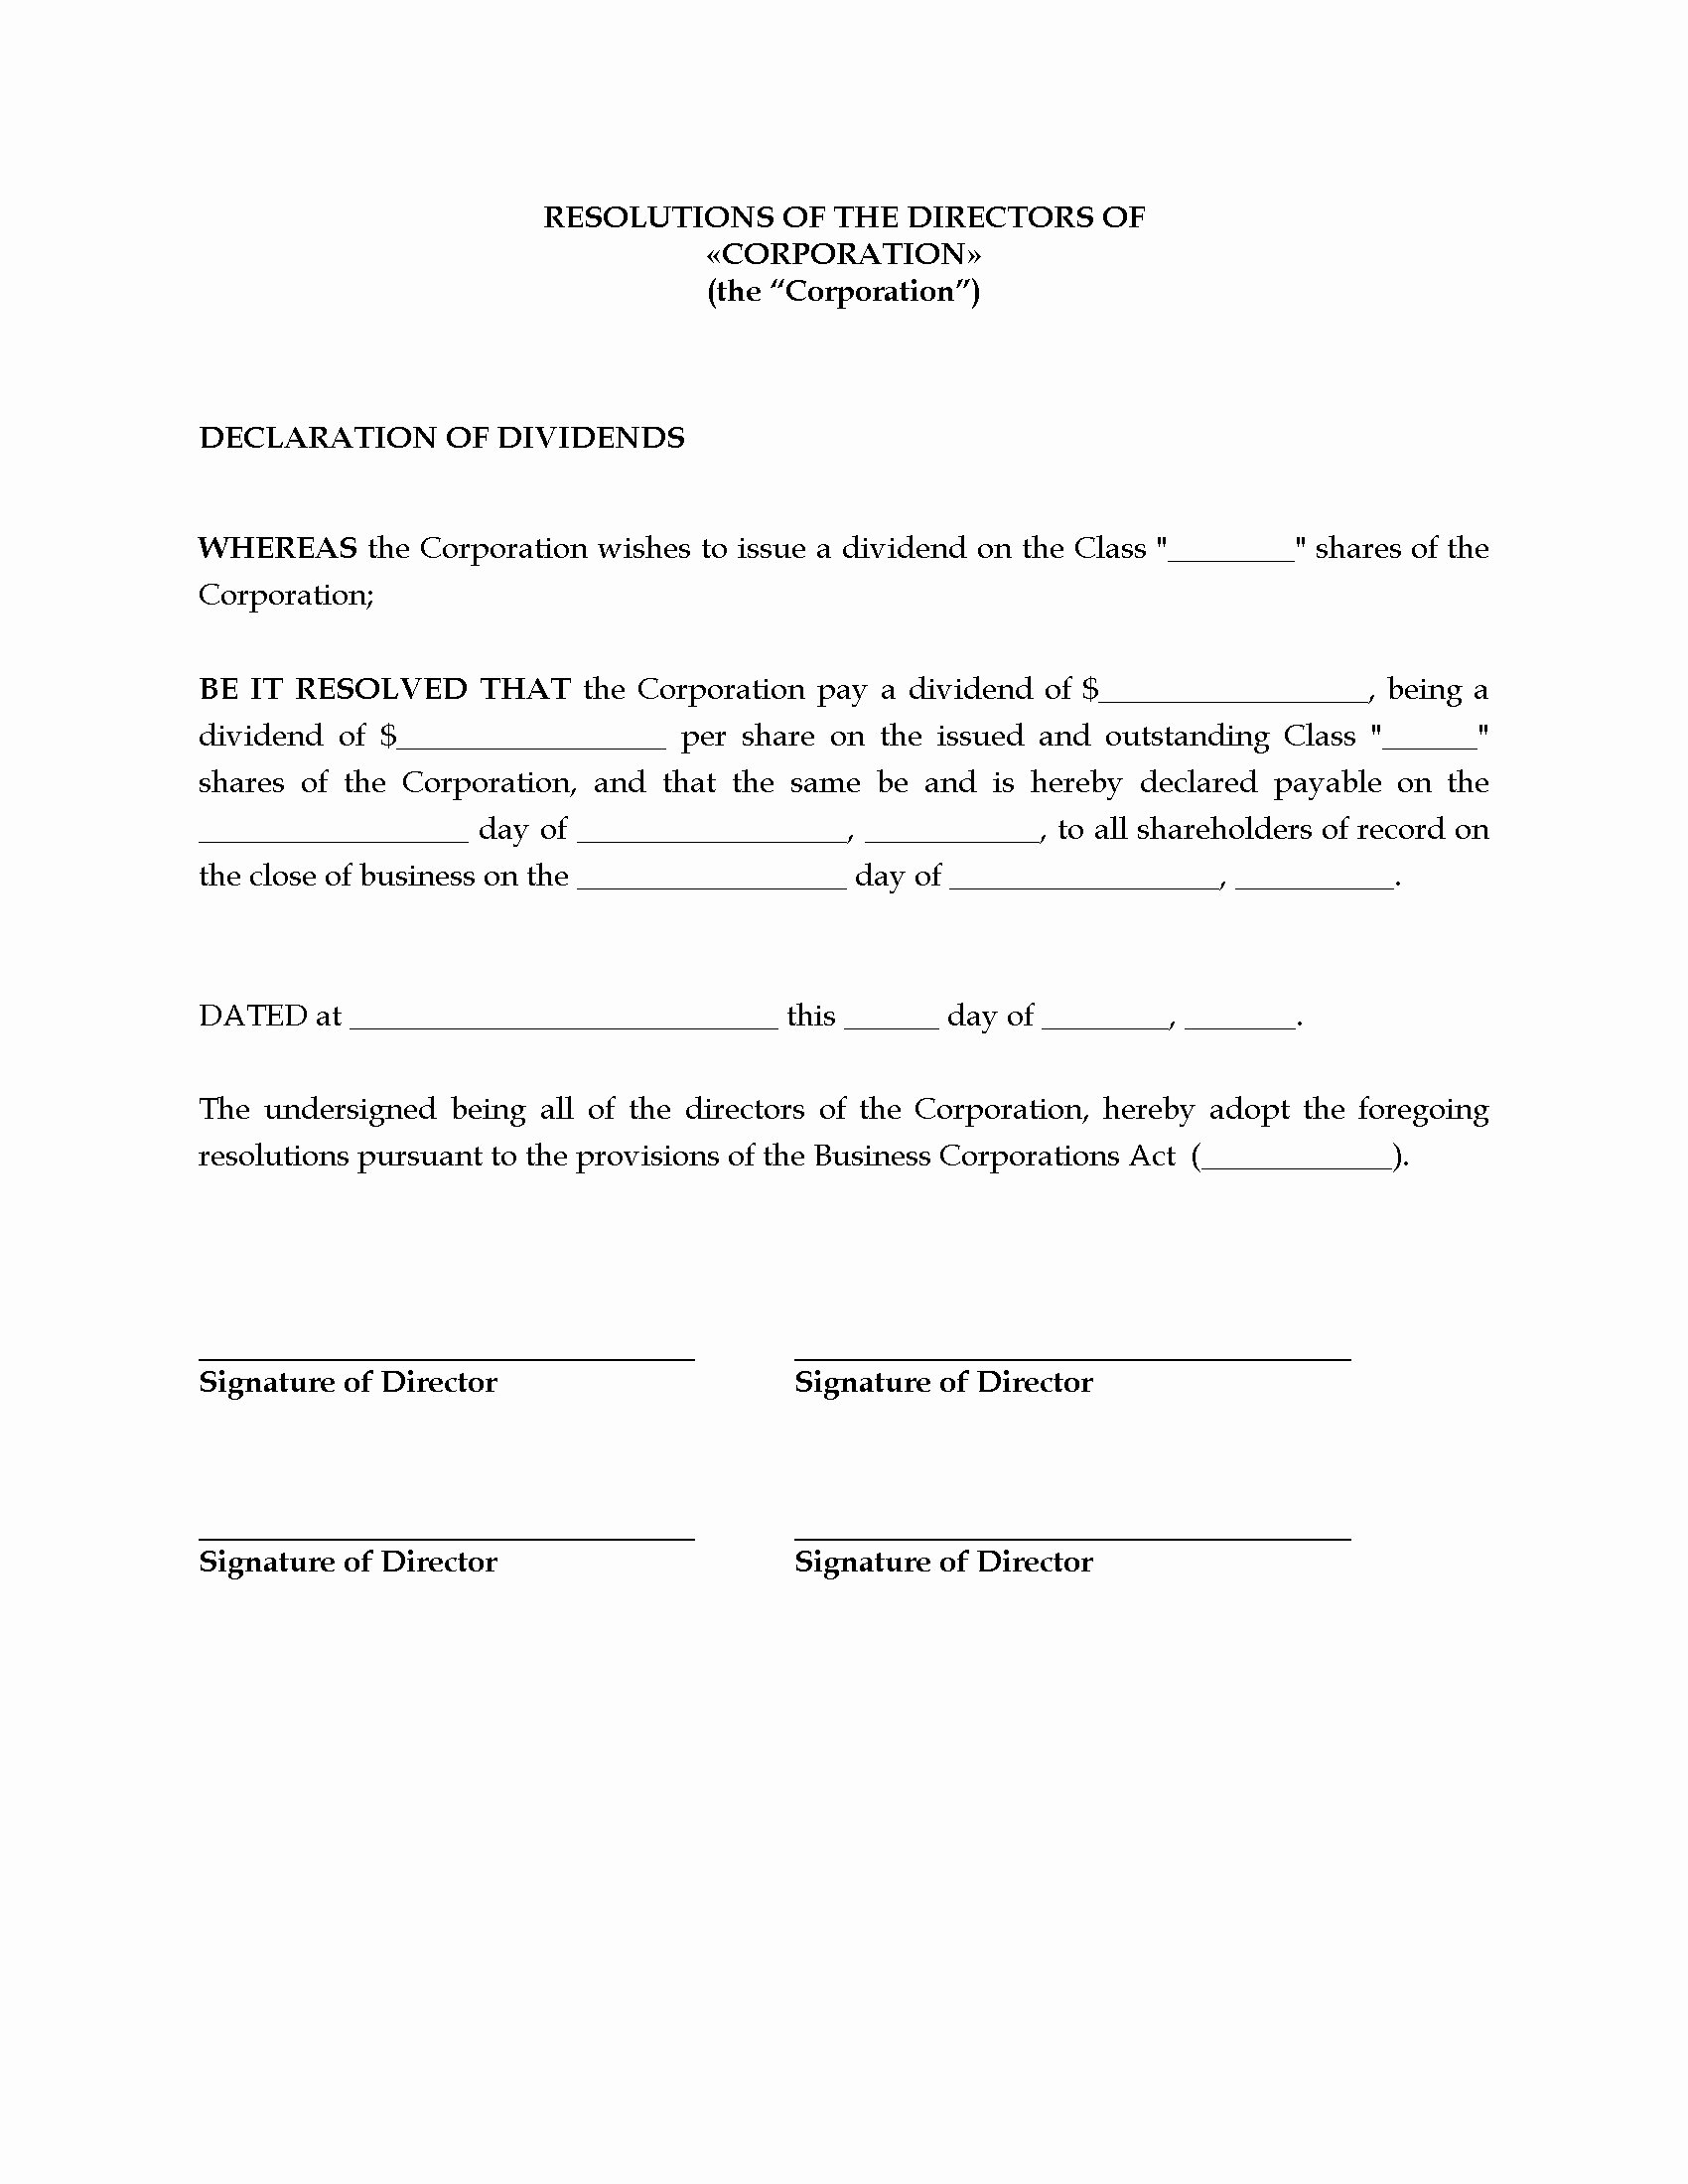 Shareholder Letter Template Beautiful Canada Directors Resolution to Declare Dividends